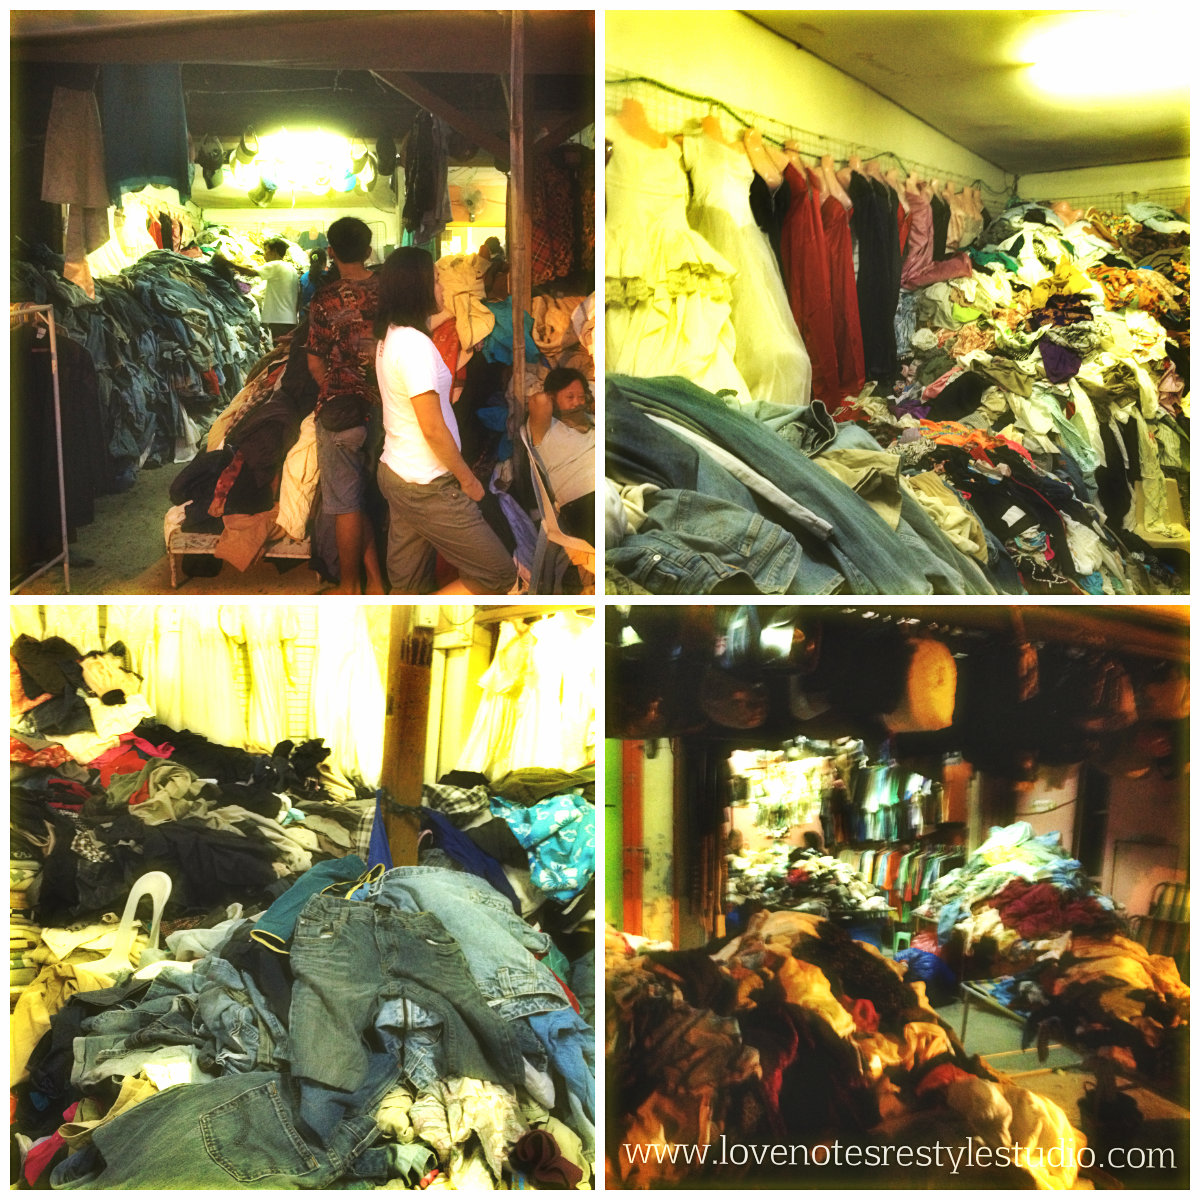 ukay ukay 2011-4-19 by ina alleco r silverio bulatlatcom there's more to ukay-ukay than the democratization of fashion the industry that sprouted out of second hand clothes generates millions in income for sellers, and saves millions more for the people who buy from them in a thesis titled economics of secondhand retail trade: an analysis of.